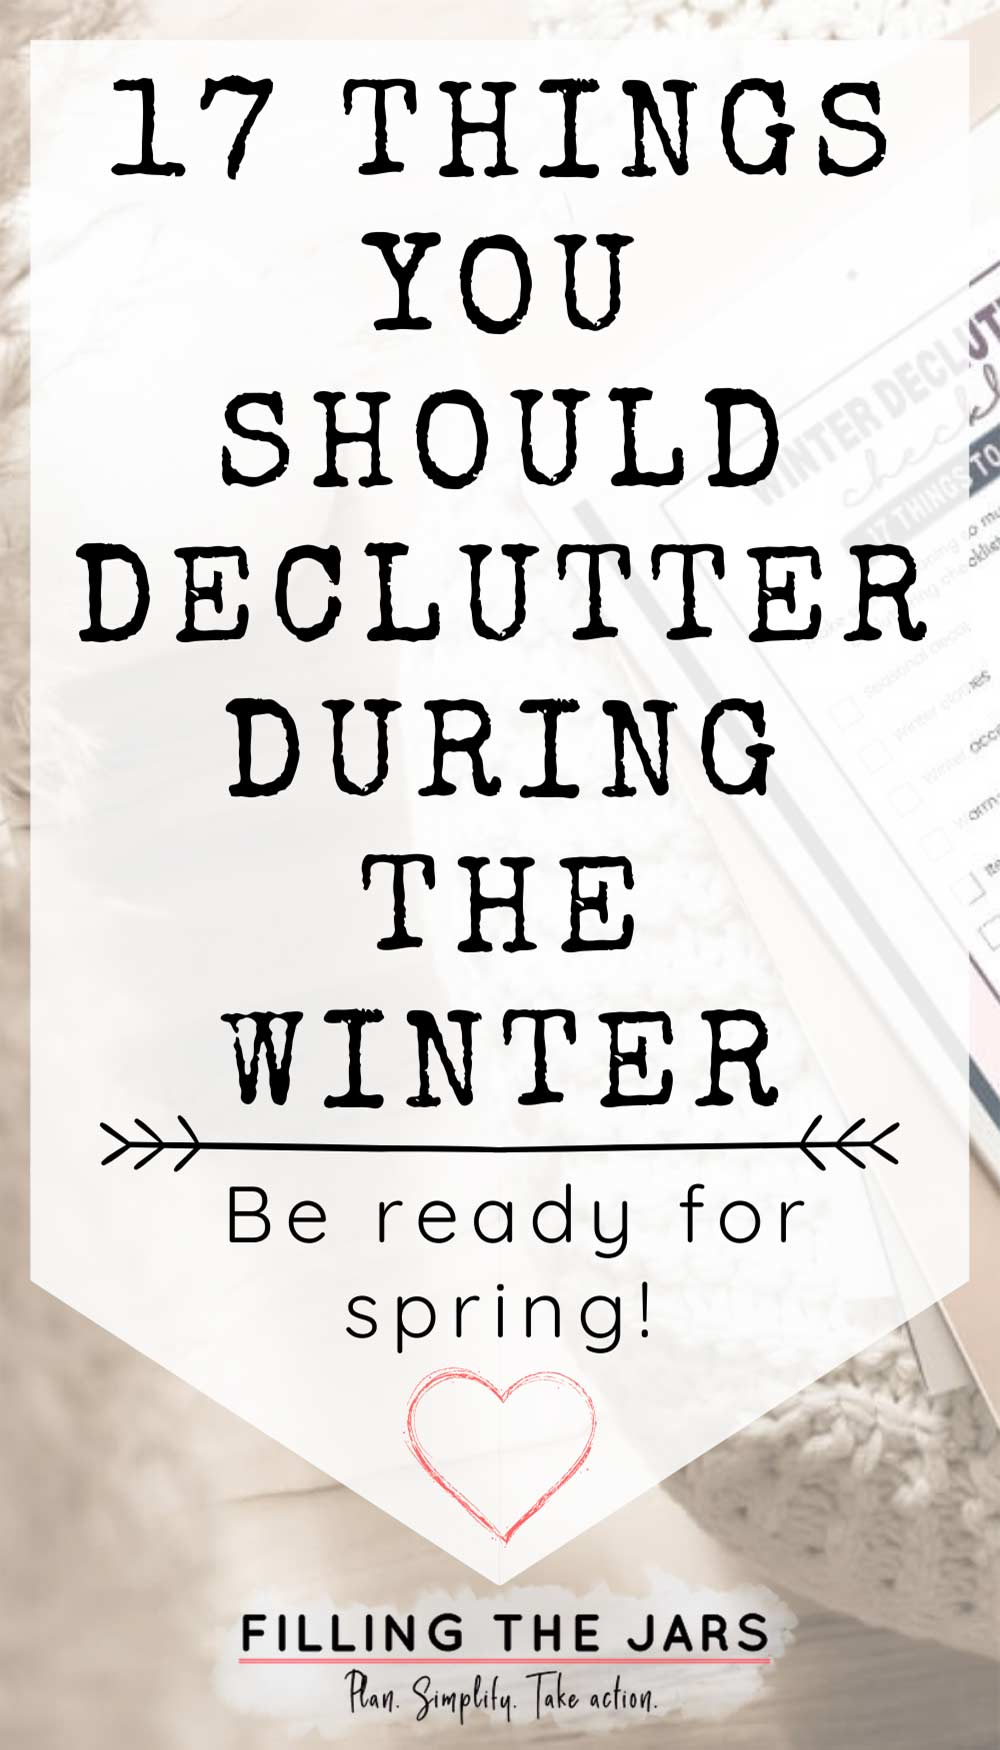 Text 17 things you should declutter during the winter on white background over image of printable decluttering list and chunky knit ottoman on wood floor.